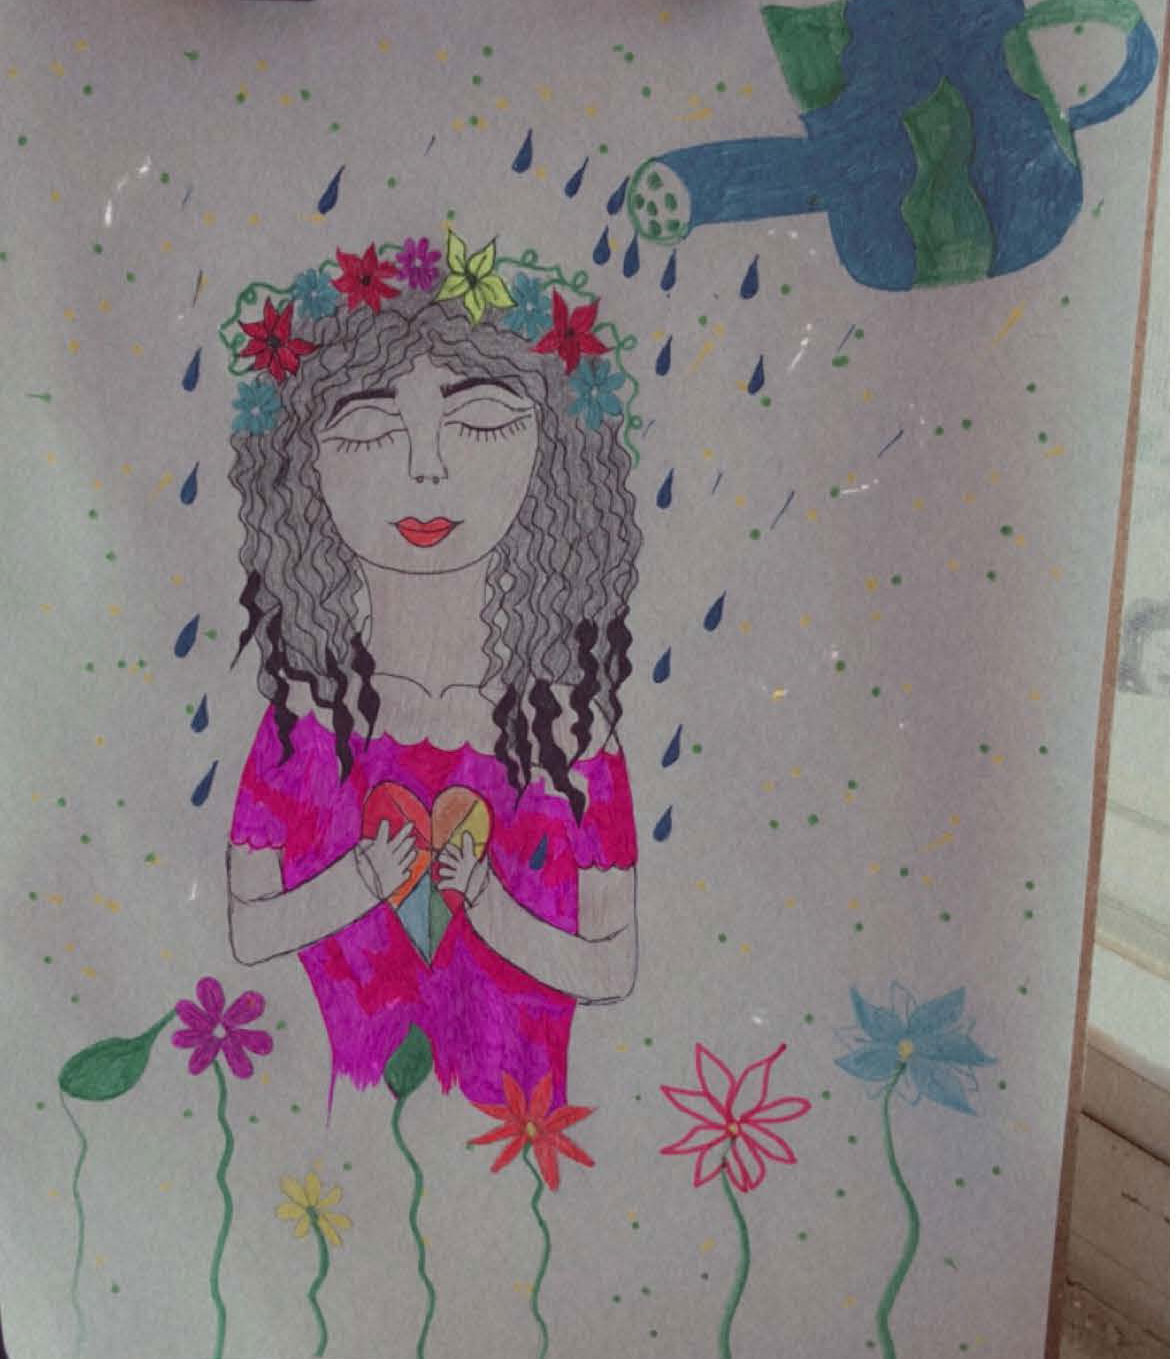 Drawing of a woman holding a colorful heart, wearing a flower crown, and having water poured over her from a watering can painted to resemble Earth